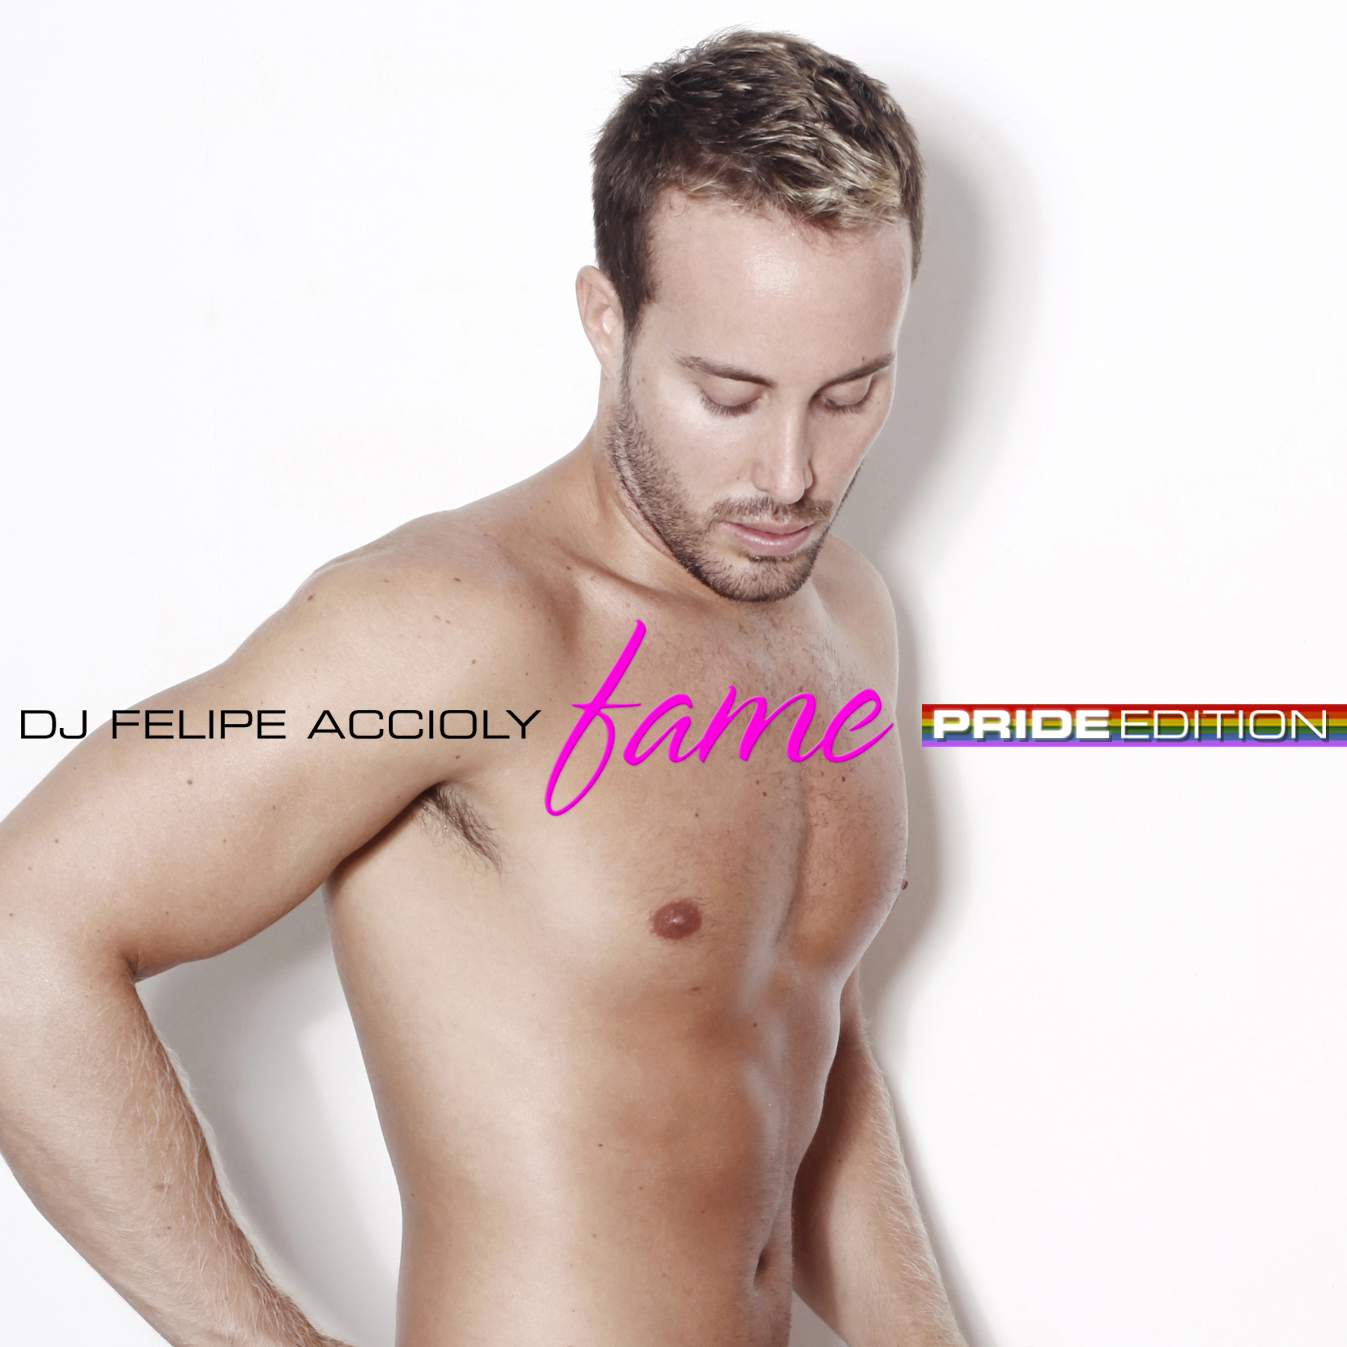 DJ FELIPE ACCIOLY - FAME: PRIDE EDITION (June 2012)